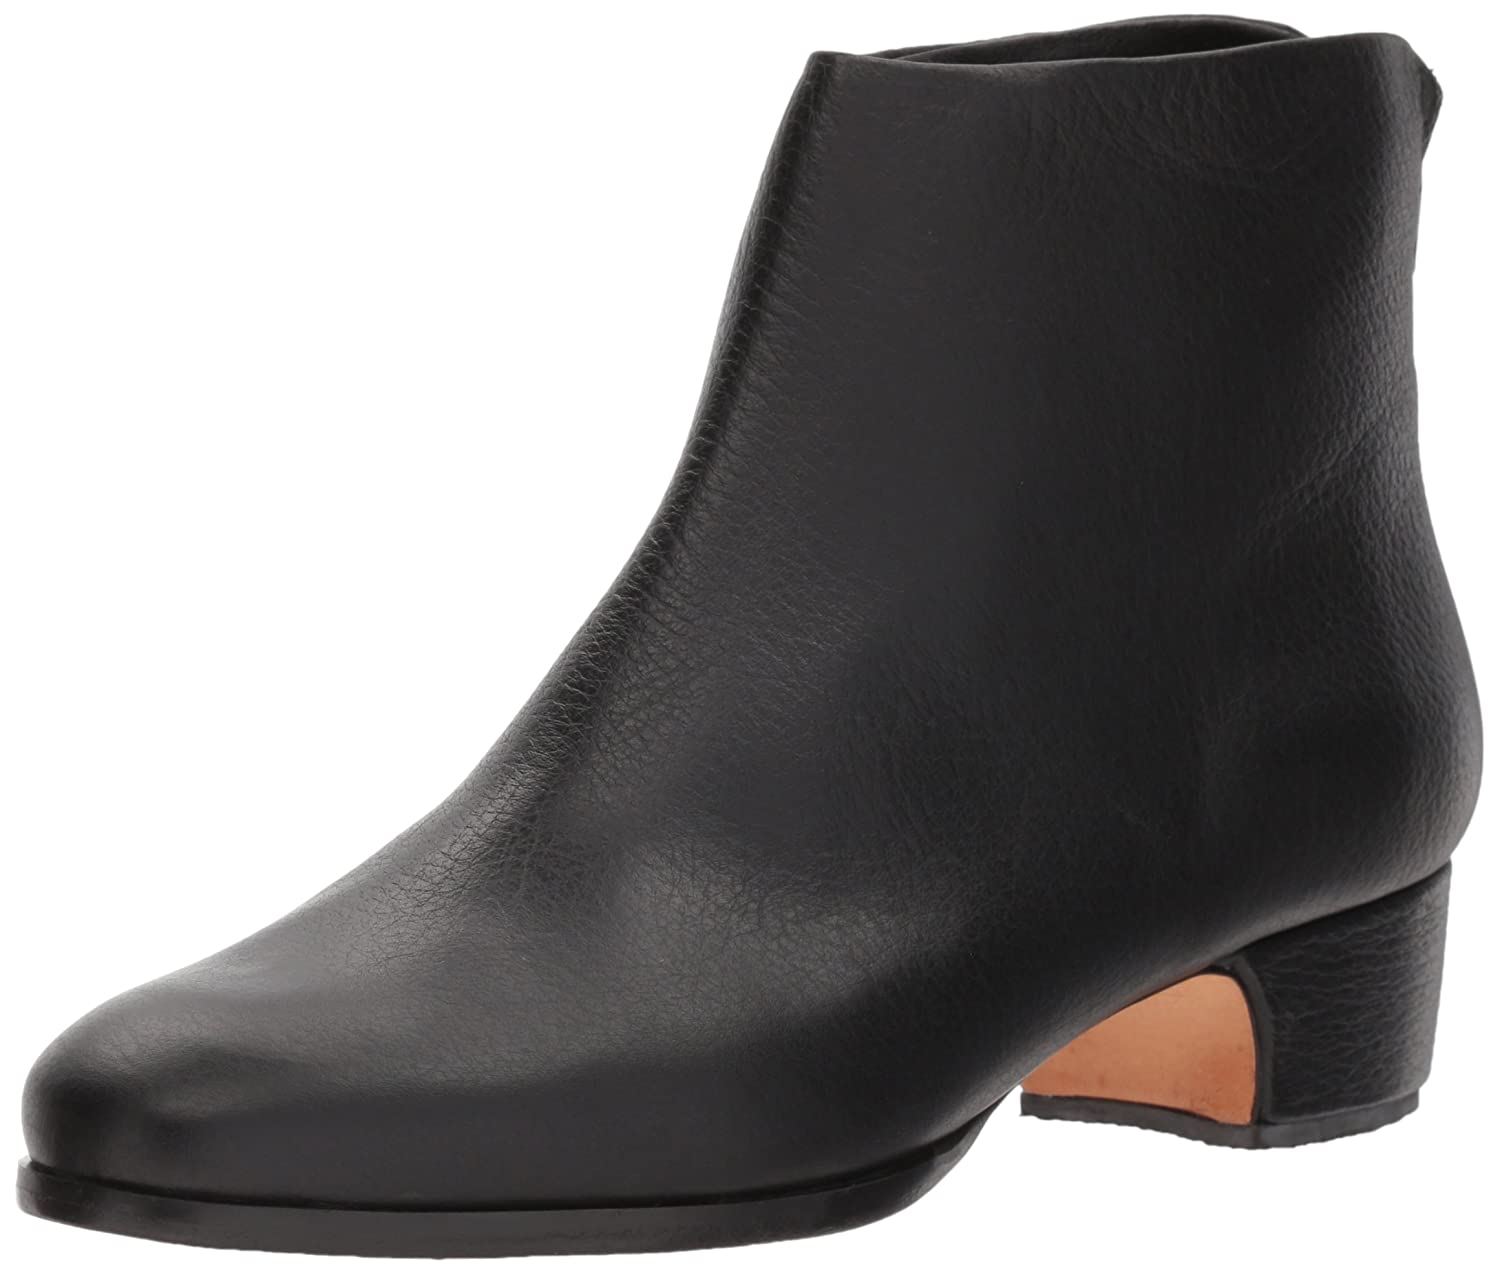 Rachel Comey Women's Typer Ankle Boot B077756DVM 6 B(M) US|Black Floater